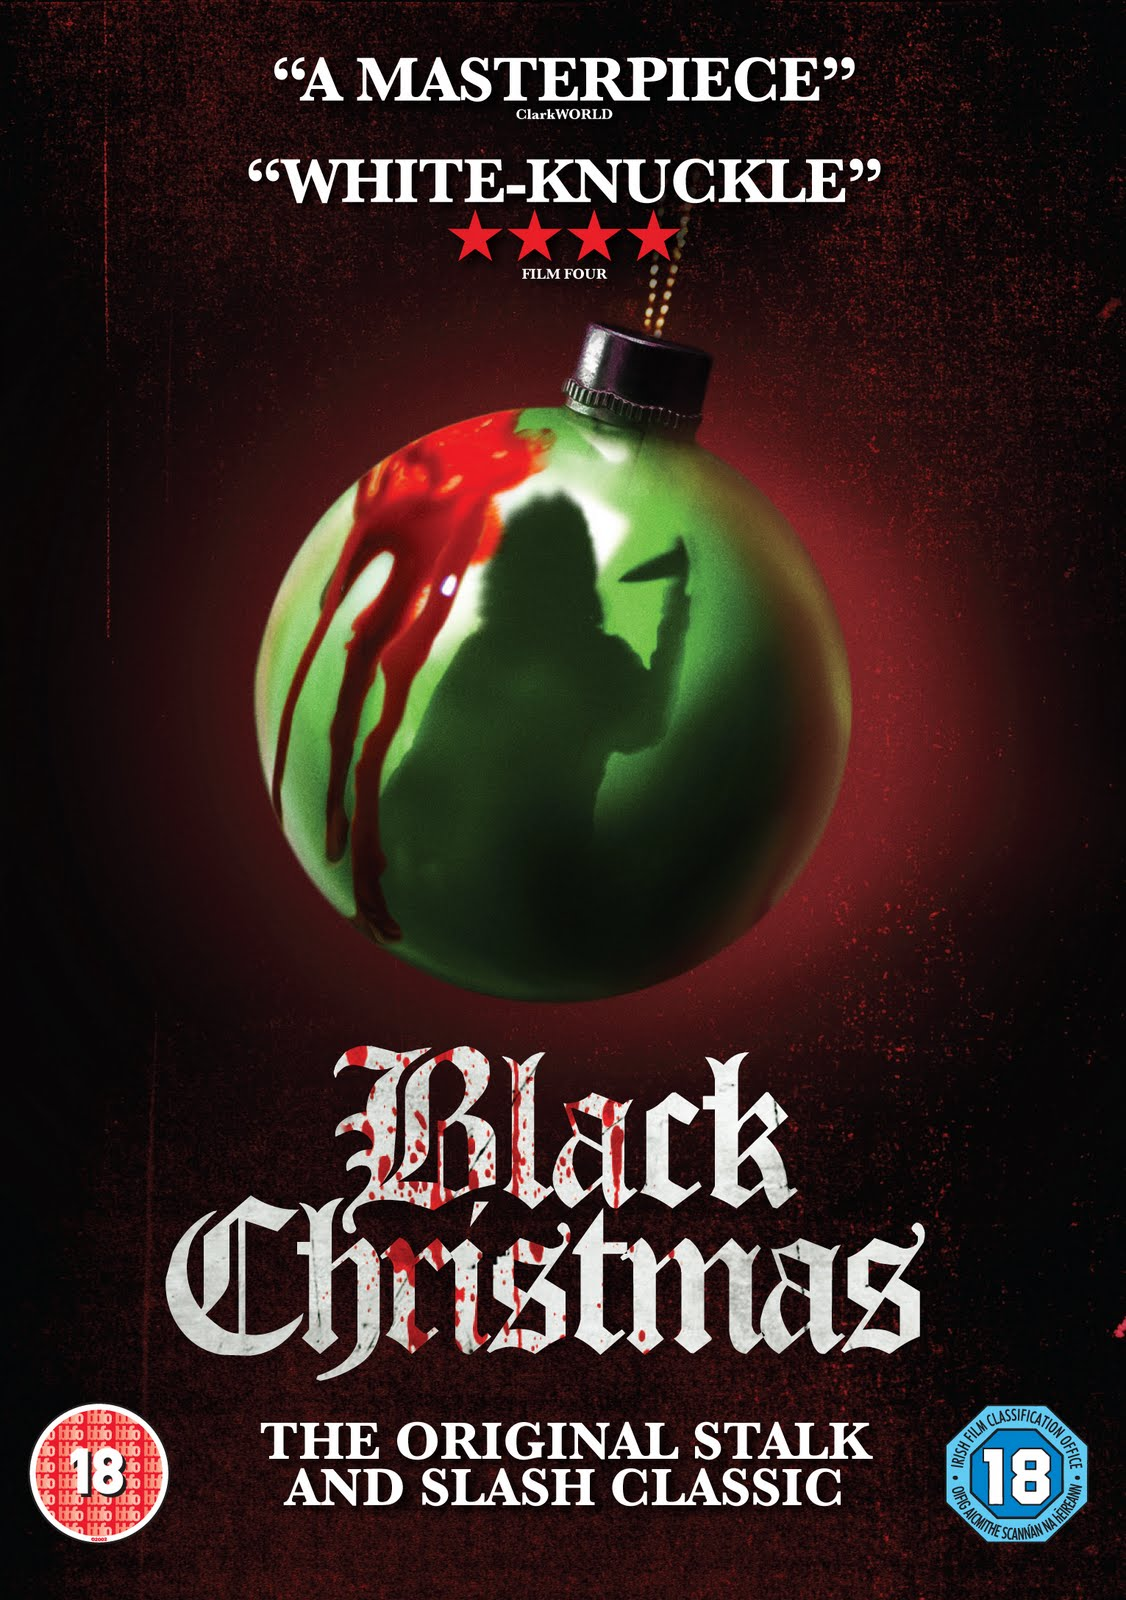 HORROR THURSDAY: BLACK CHRISTMAS